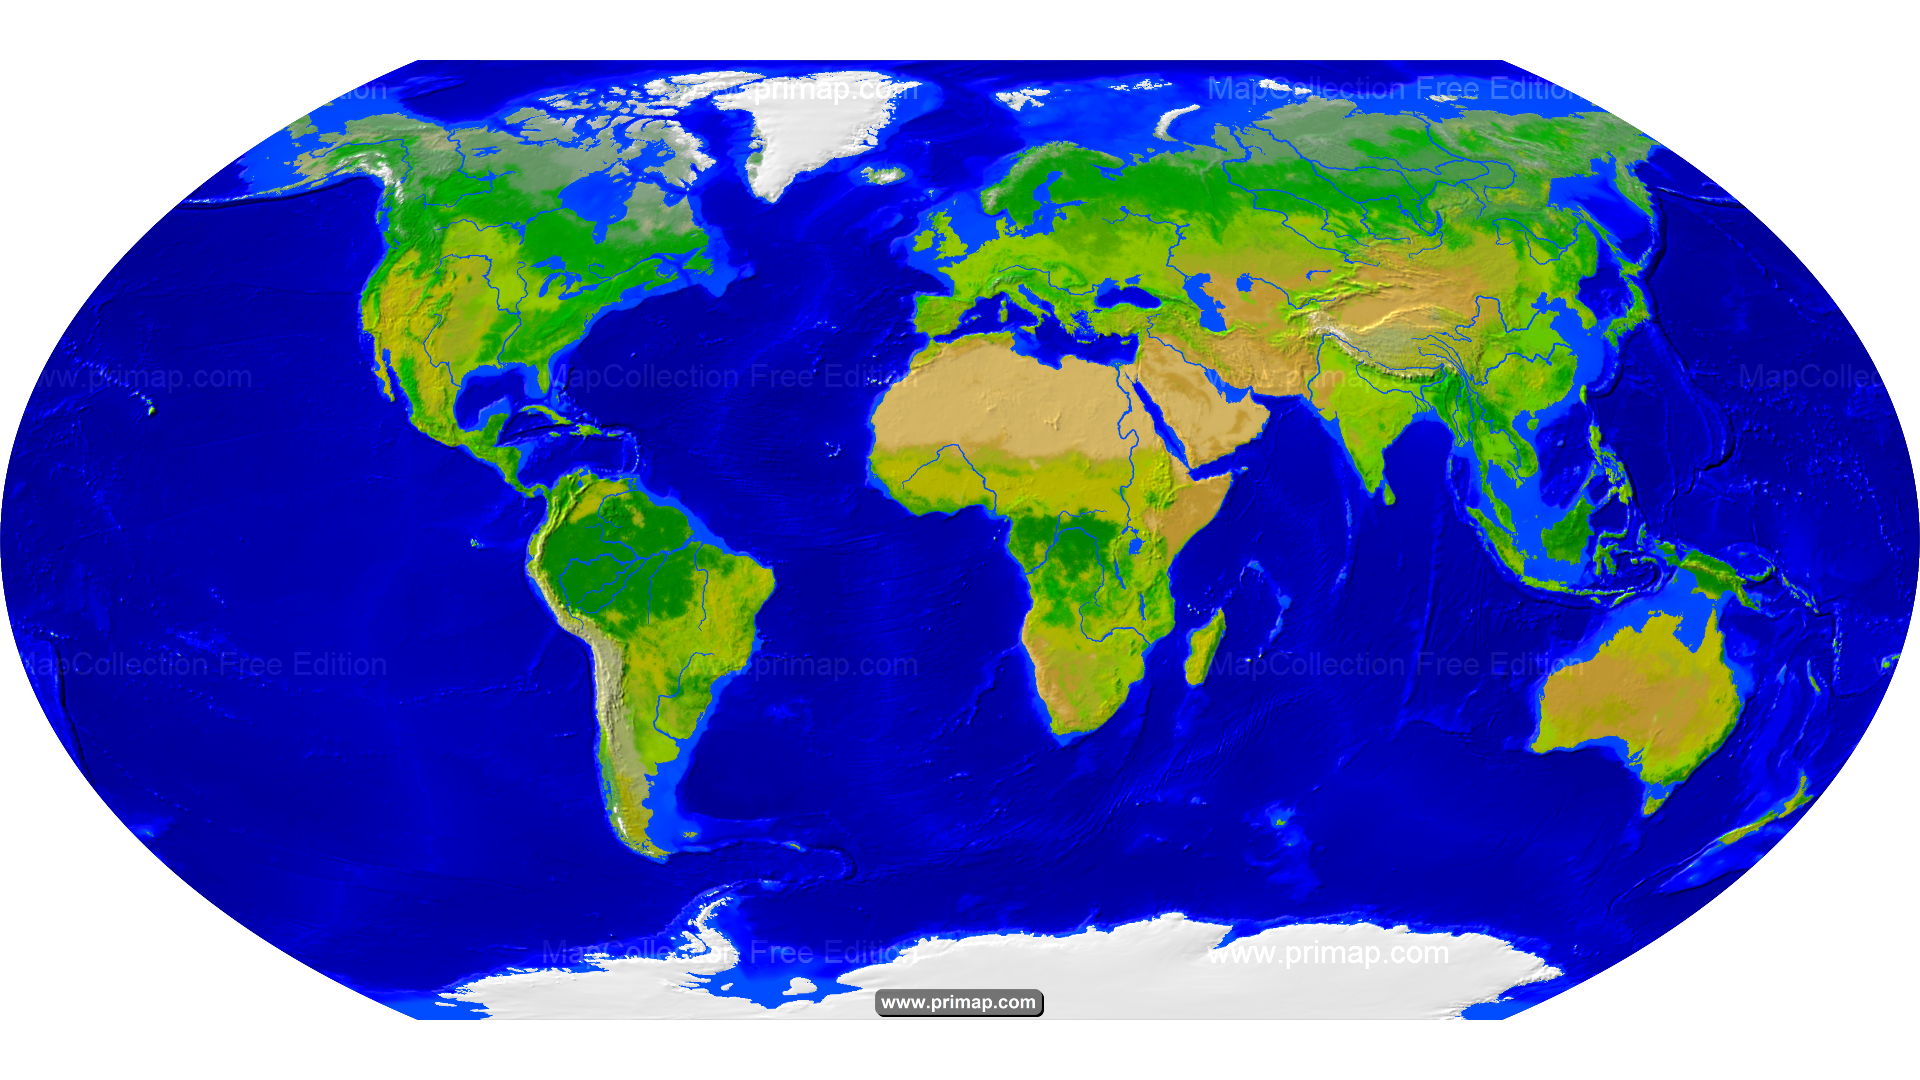 Primap world maps show map gumiabroncs Image collections